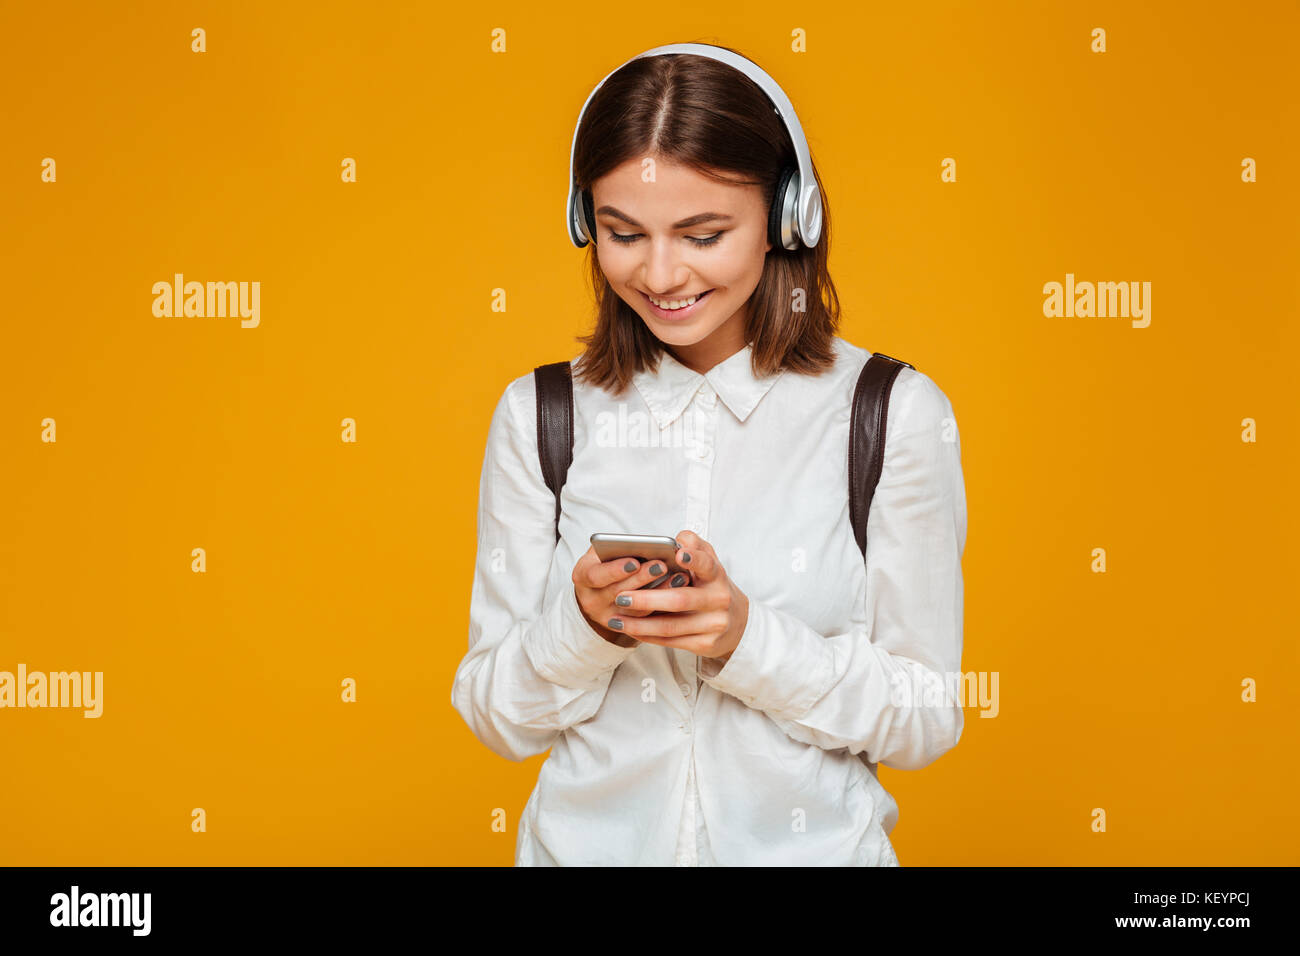 Portrait of a smiling teenage schoolgirl in uniform with headphones holding mobile phone isolated over orange background Stock Photo